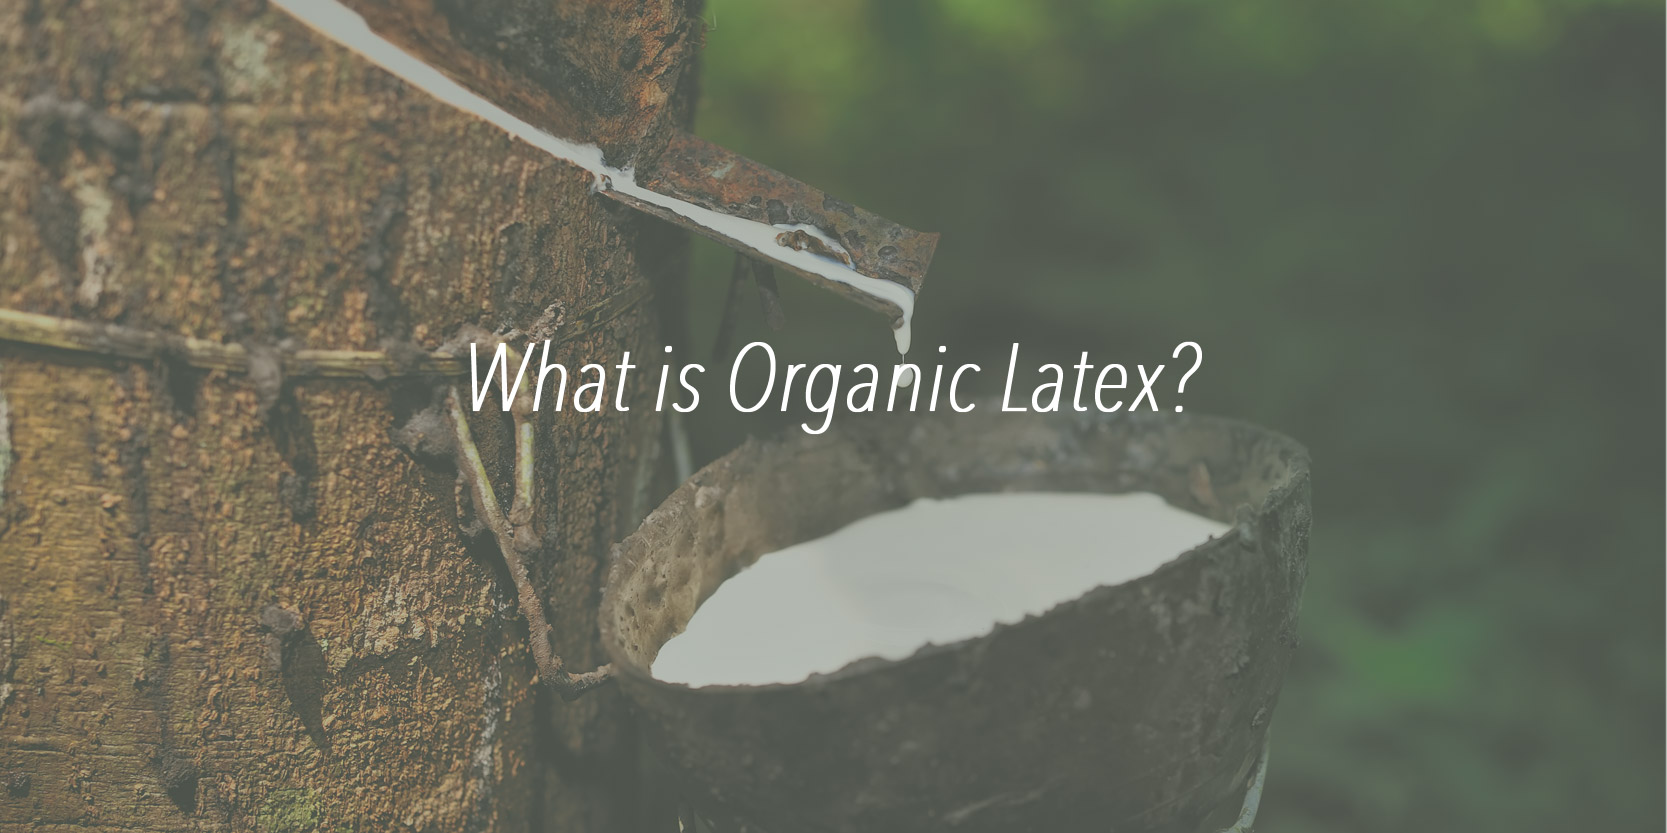 What is Organic Latex